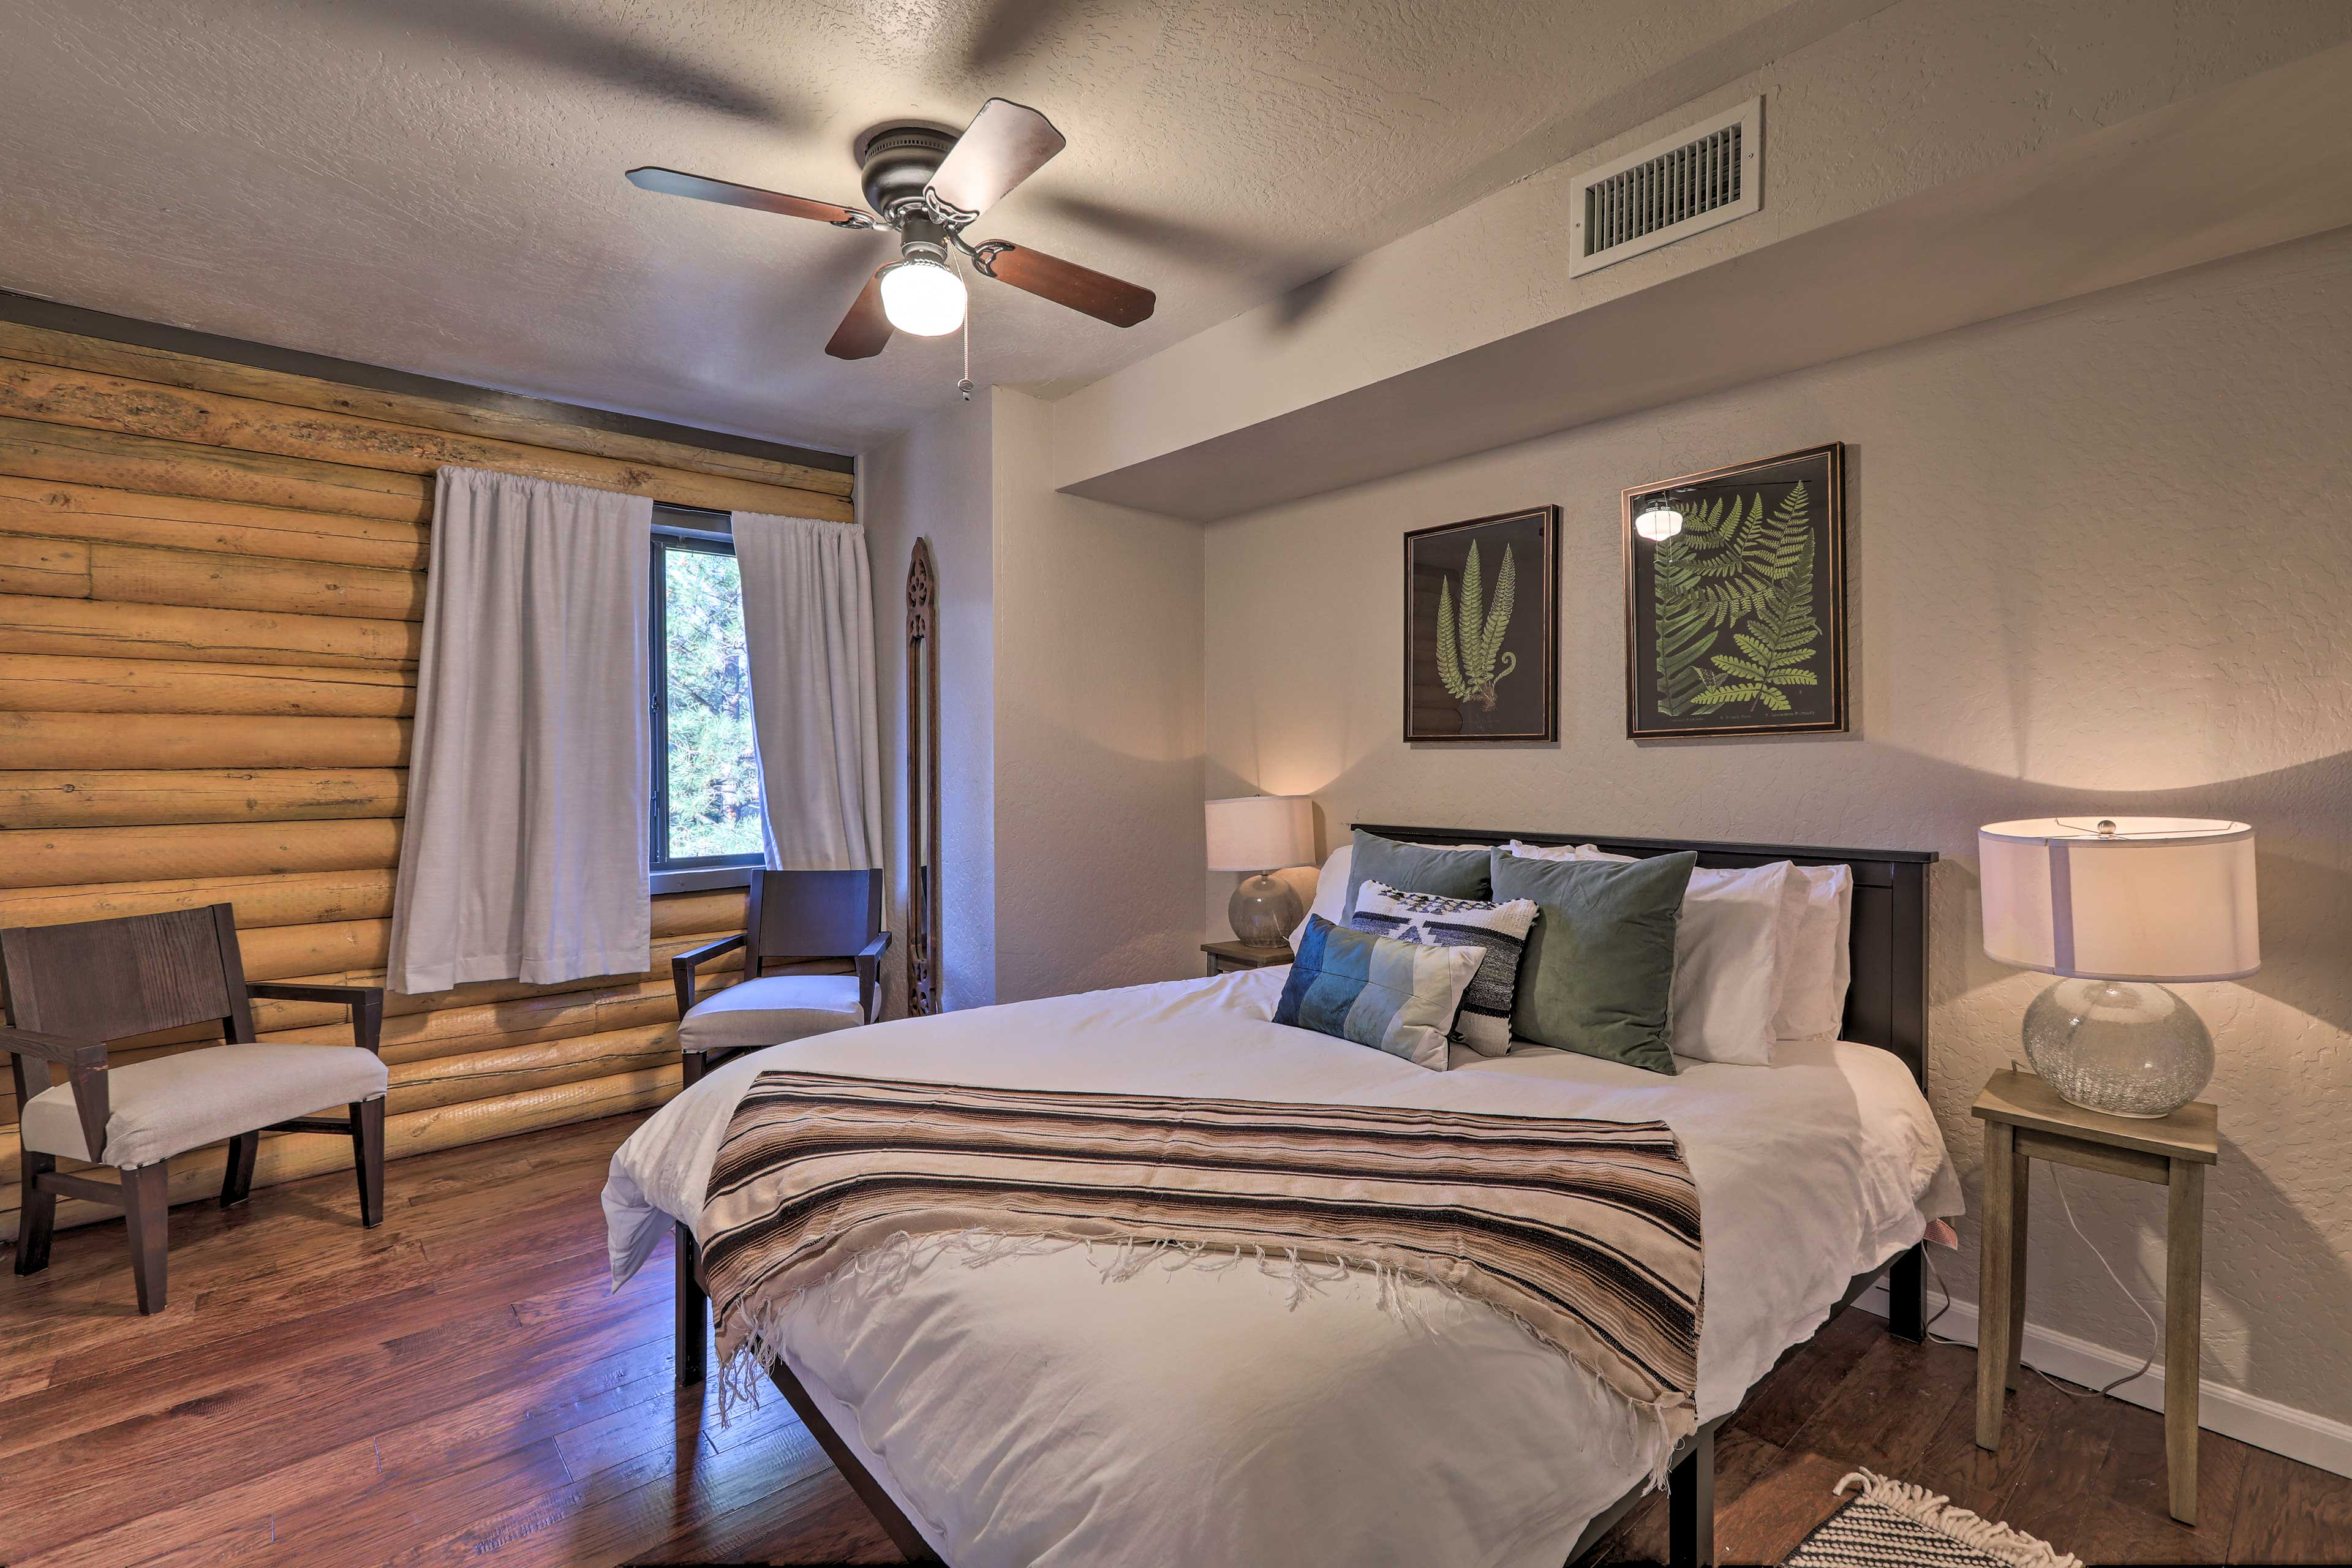 You'll love the rustic decor in each bedroom.